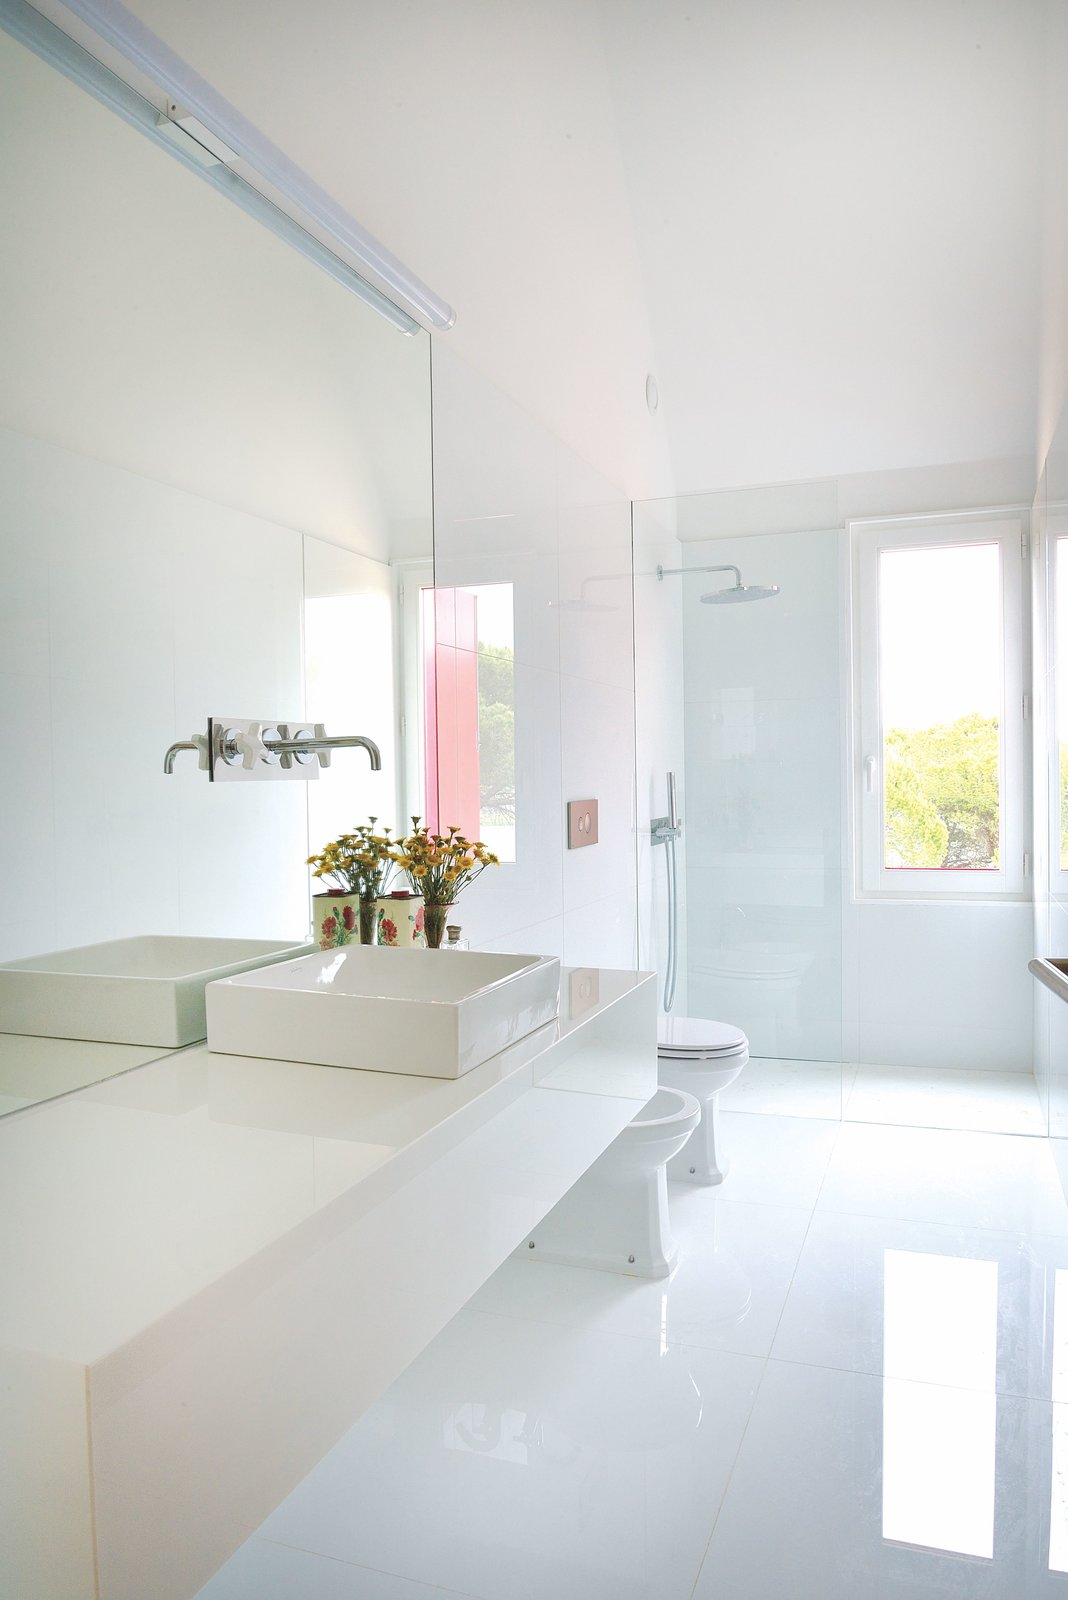 Bath, Vessel, One Piece, Full, Enclosed, Engineered Quartz, Marble, and Wall A bright and white bathroom.  Best Bath One Piece Vessel Enclosed Full Wall Photos from A Fiery-Red Home Sizzles With Simplistic, Modern Design